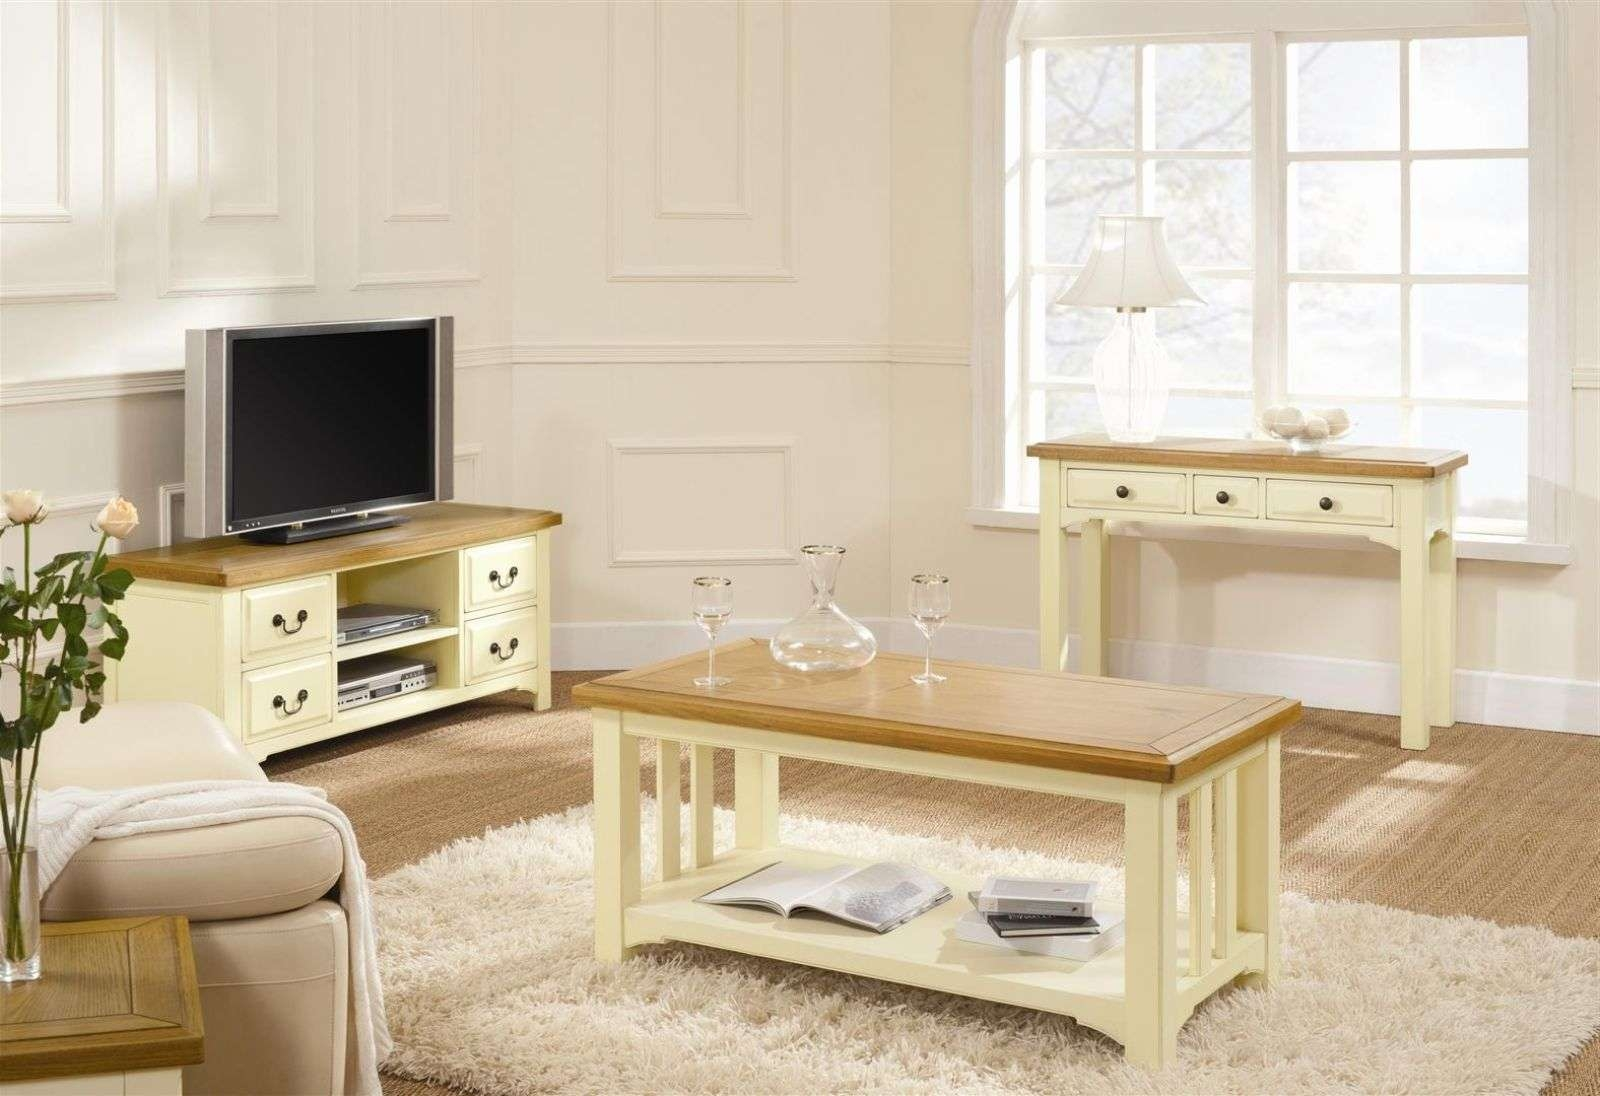 Sandringham Oak & Cream Coffee Table Cream Coffee Table With Glass Pertaining To Latest Cream And Oak Coffee Tables (View 8 of 20)